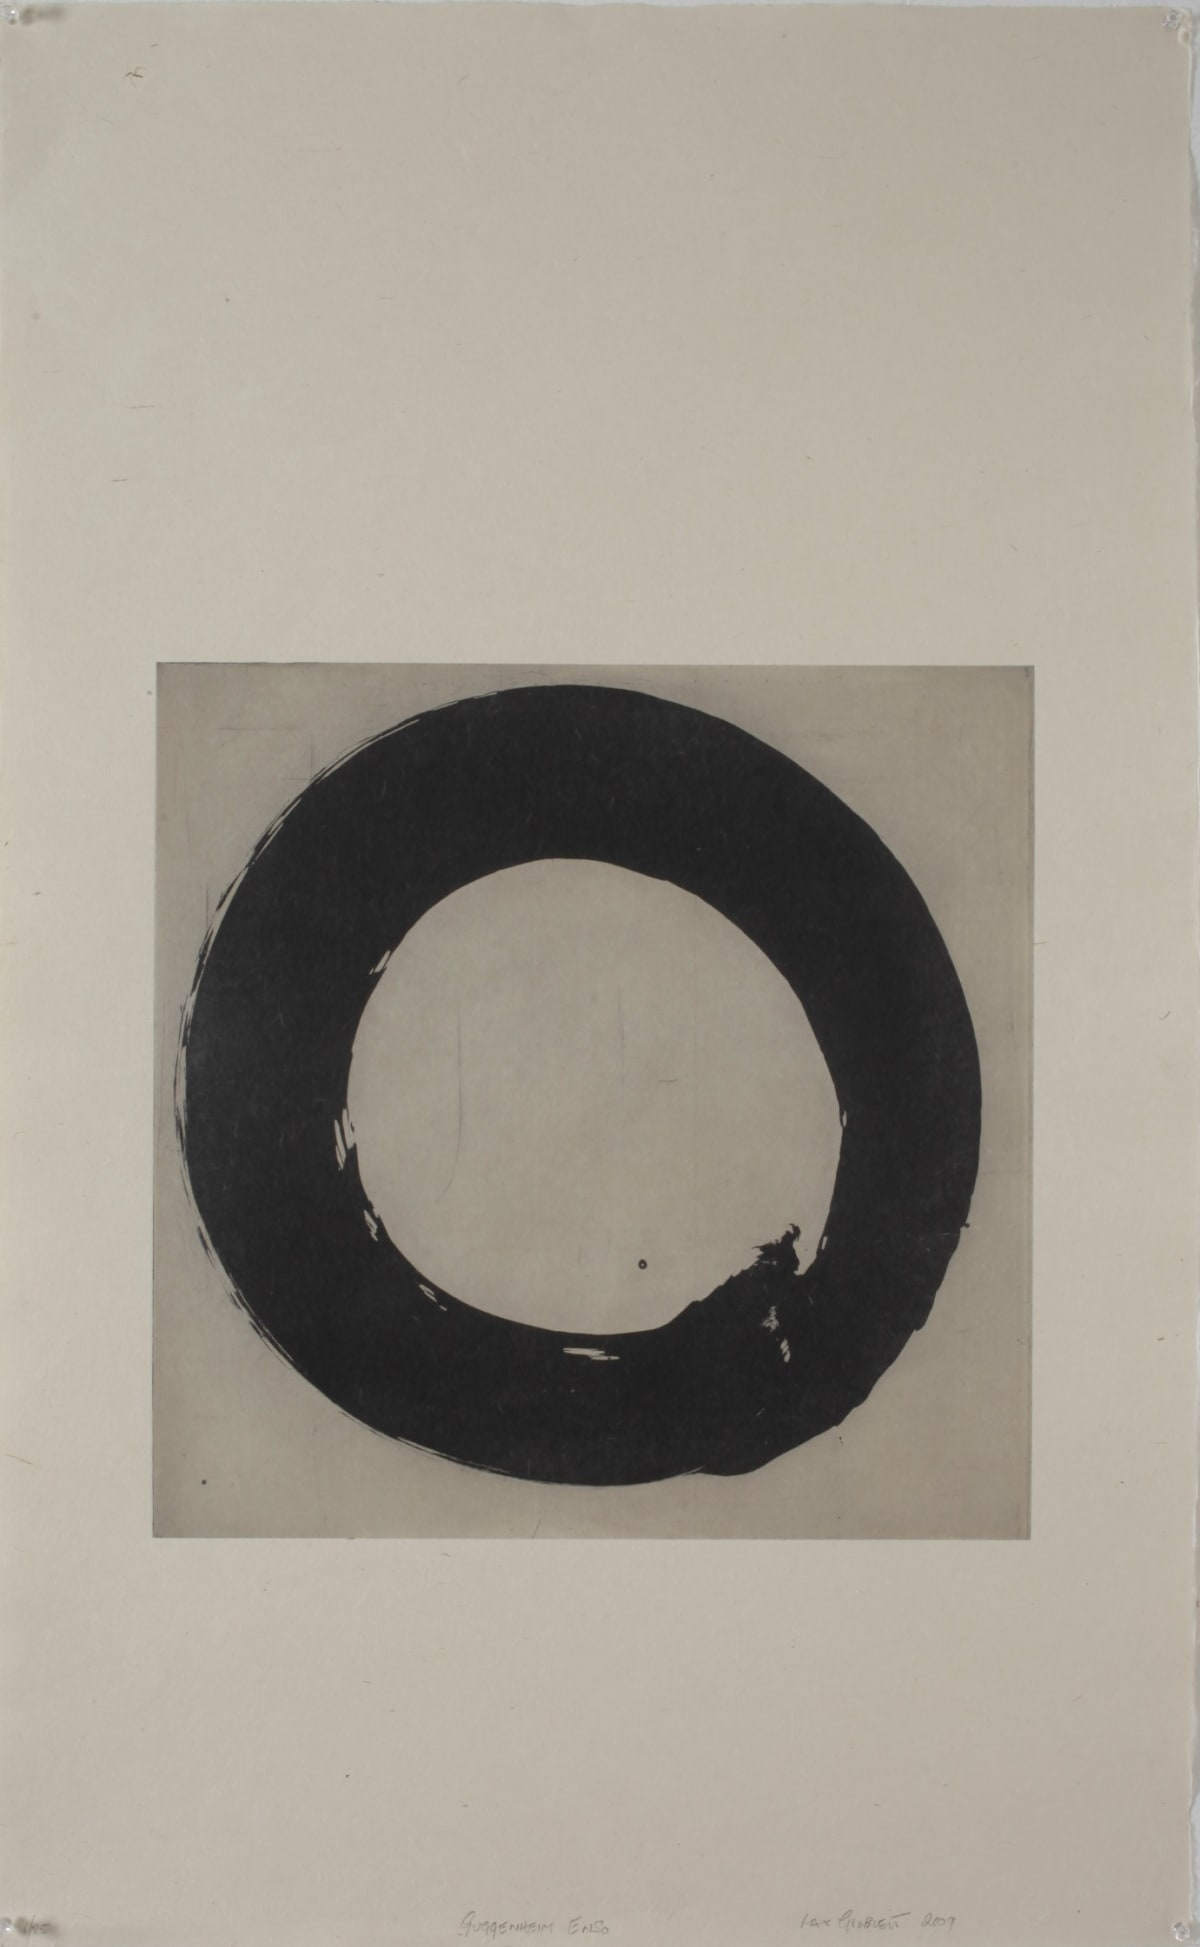 Max GIMBLETT Guggenheim Enso, 2009 Ink and photo etching transfer on paper 39.5 x 24.5 in 100.3 x 62.2 cm #7/25